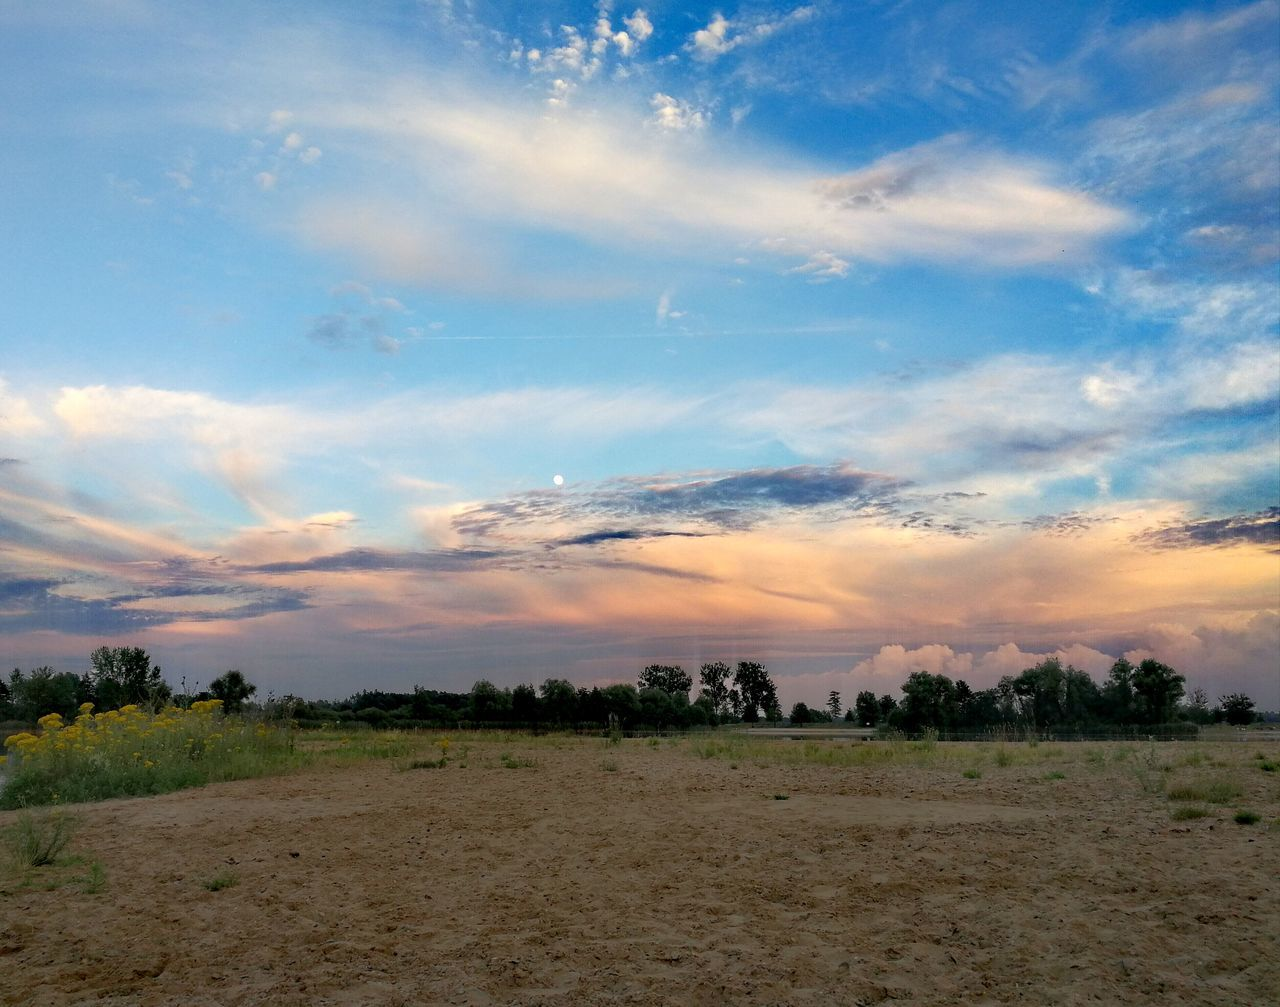 landscape, sky, nature, cloud - sky, beauty in nature, field, tranquility, tranquil scene, no people, scenics, tree, sunset, outdoors, day